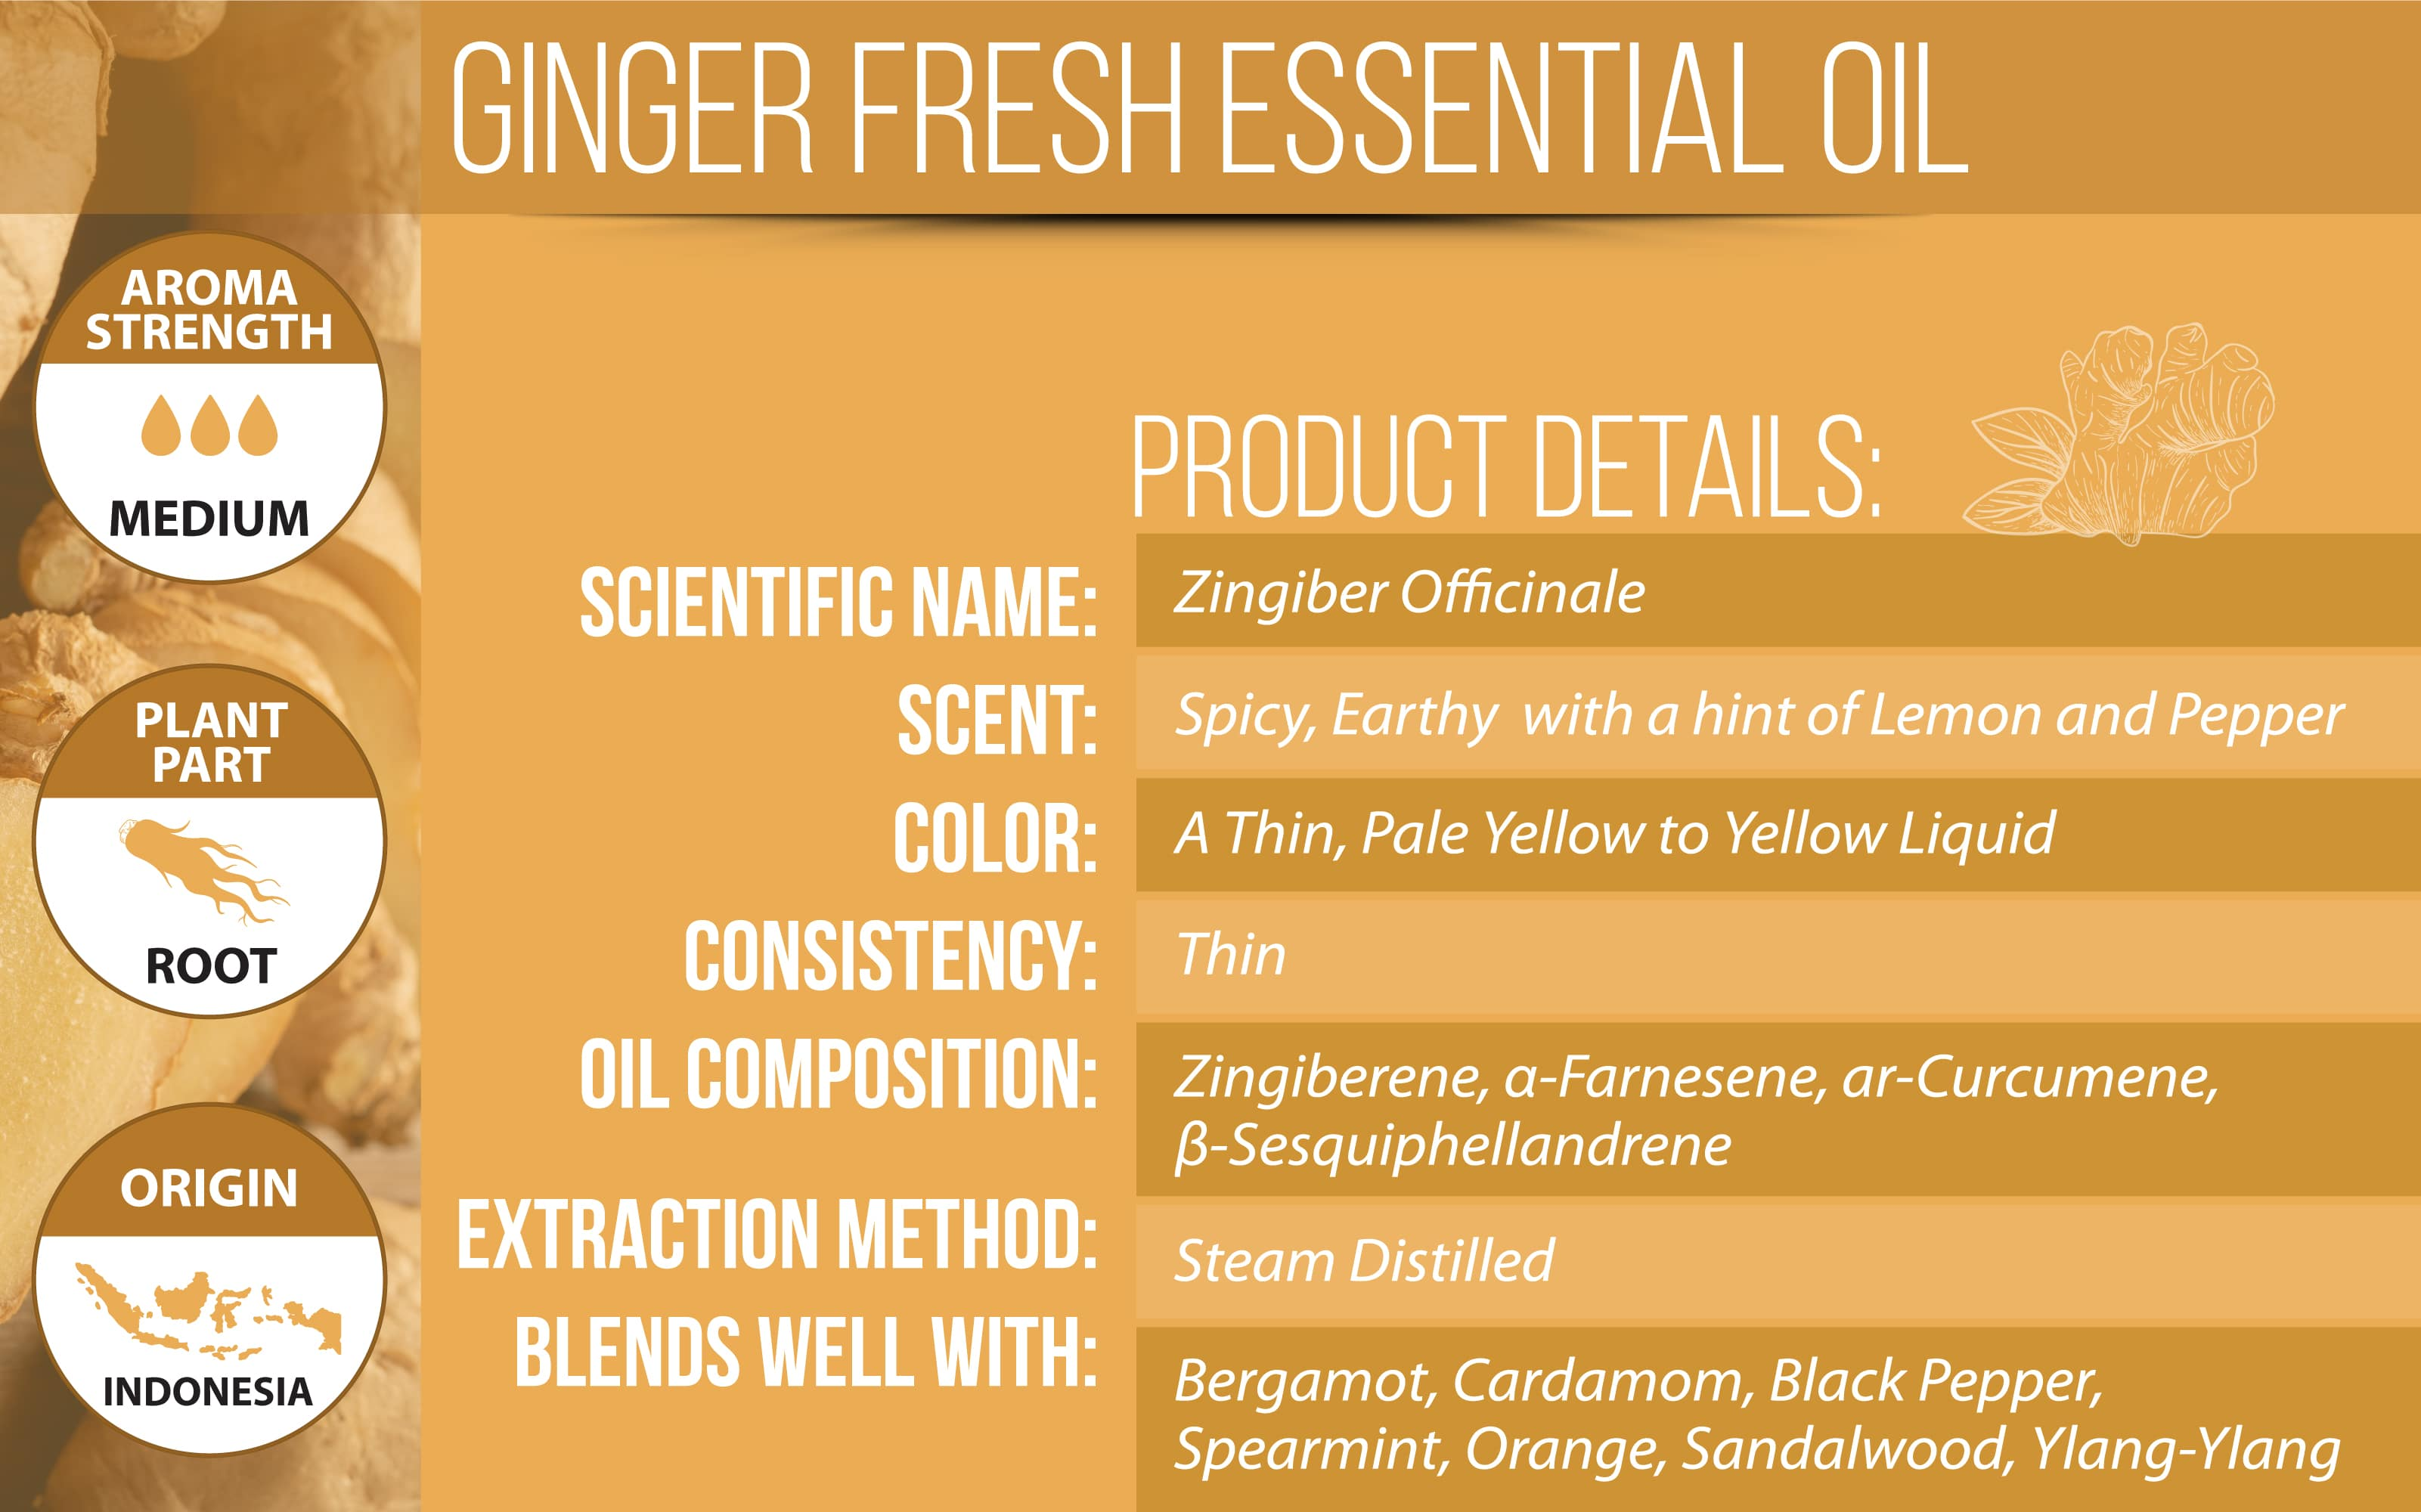 Ginger Essential Oil Product Details